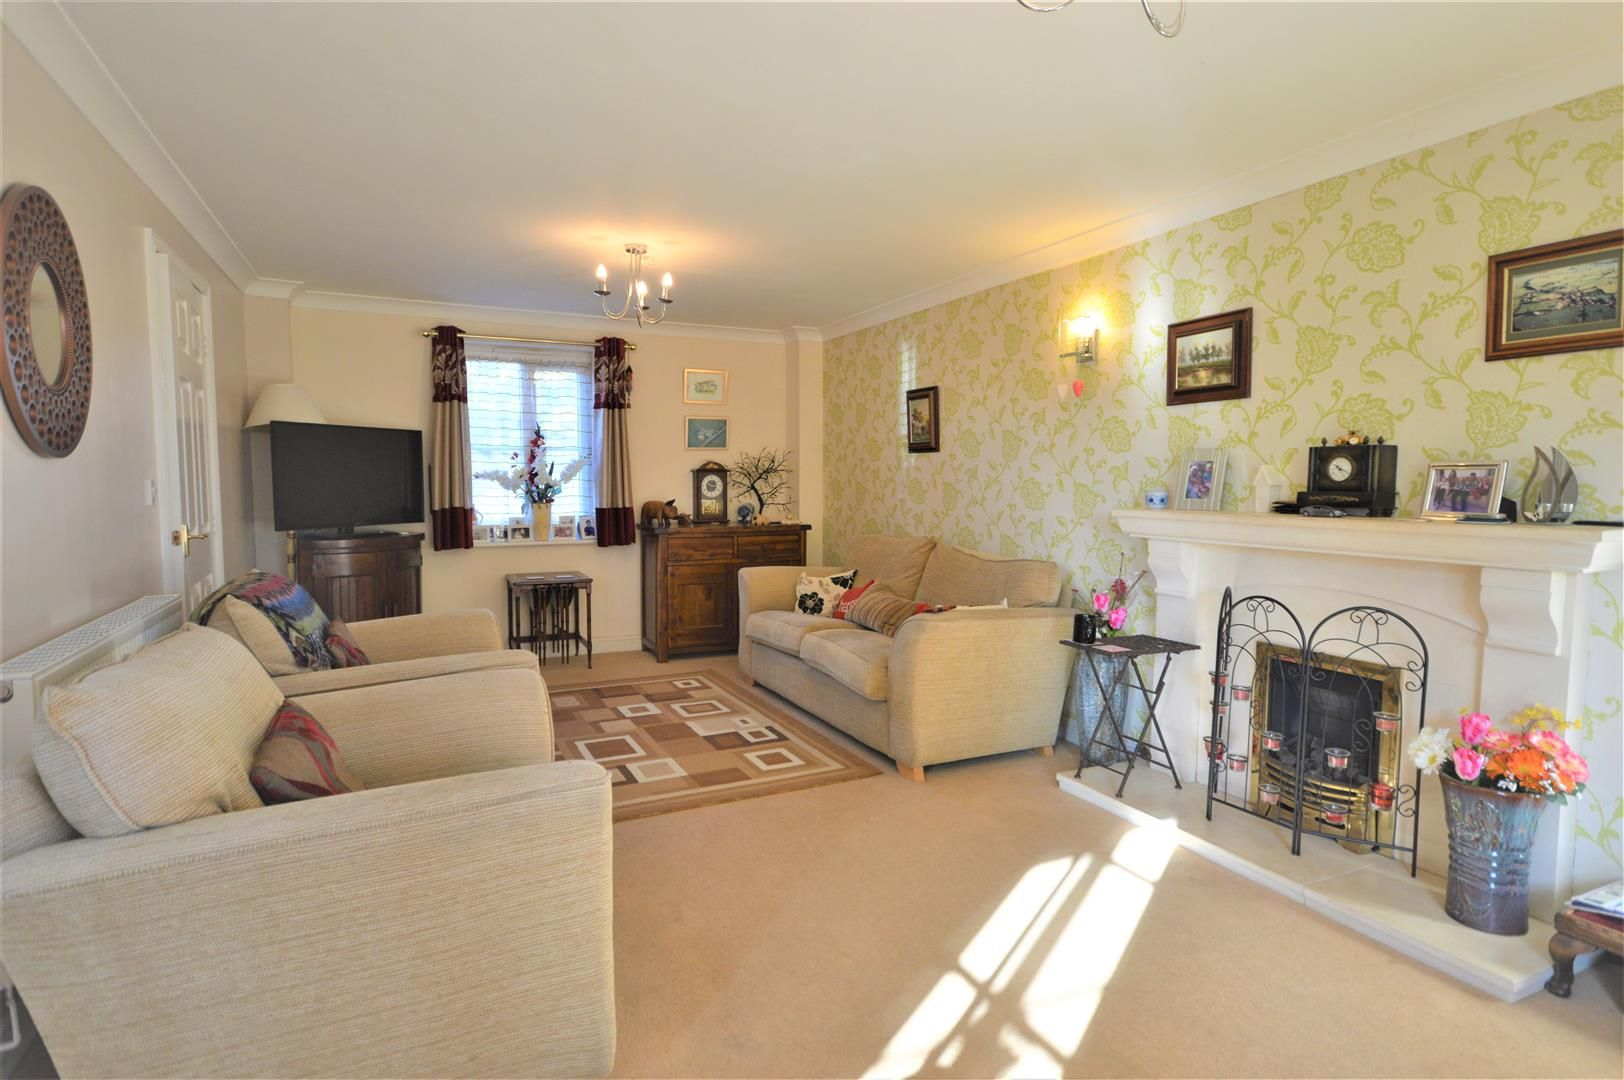 4 bed semi-detached for sale in Leominster 3